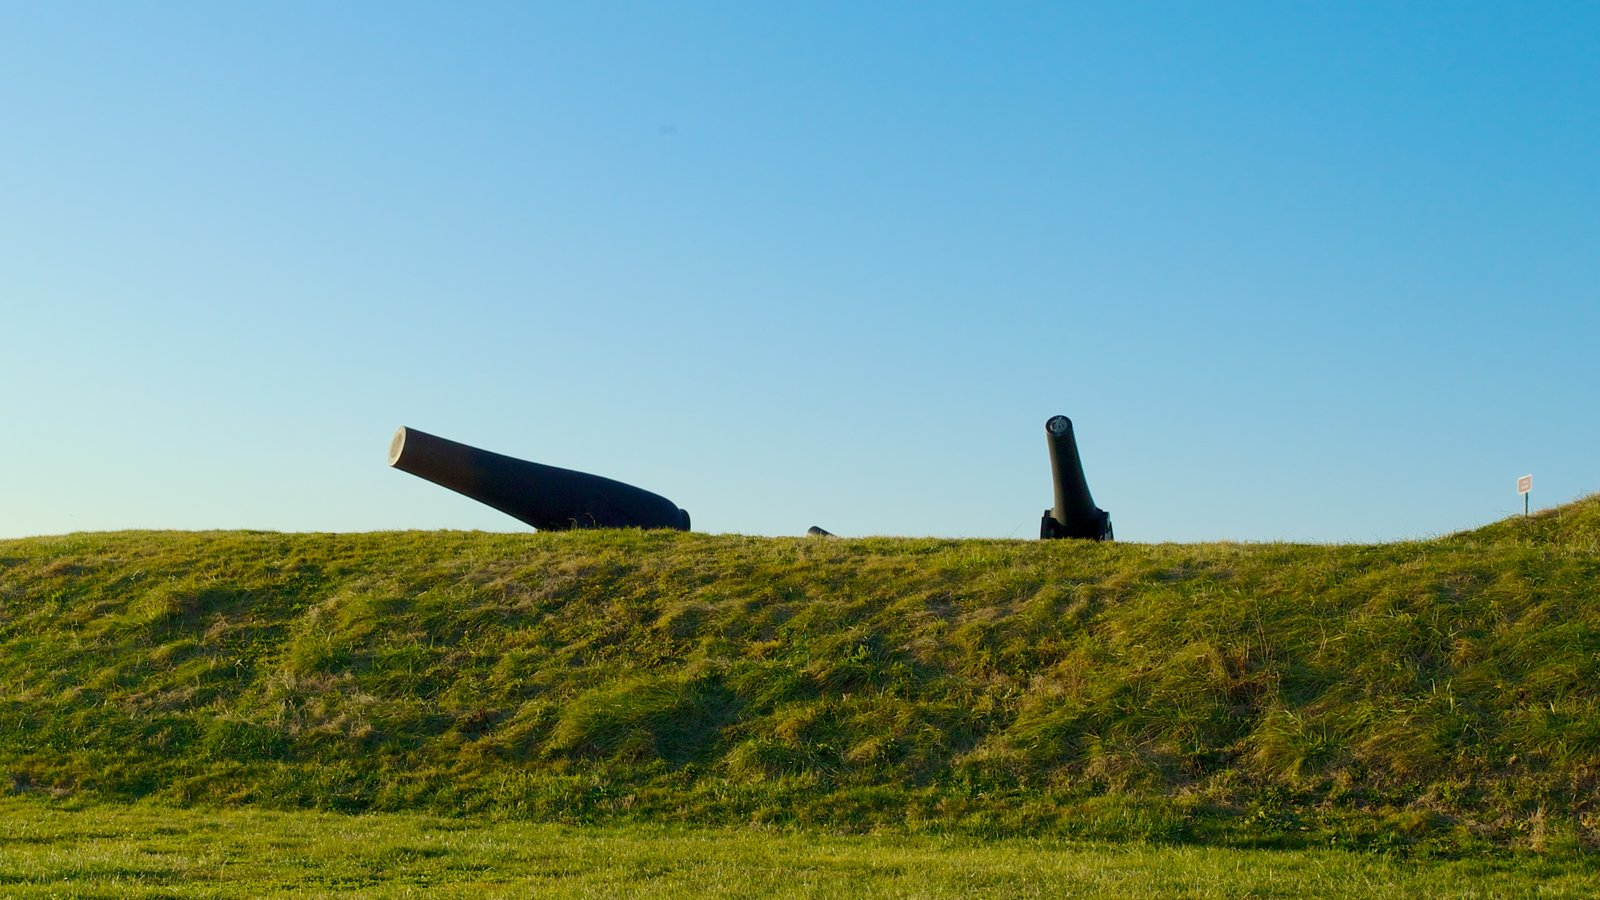 Fort McHenry showing military items and landscape views